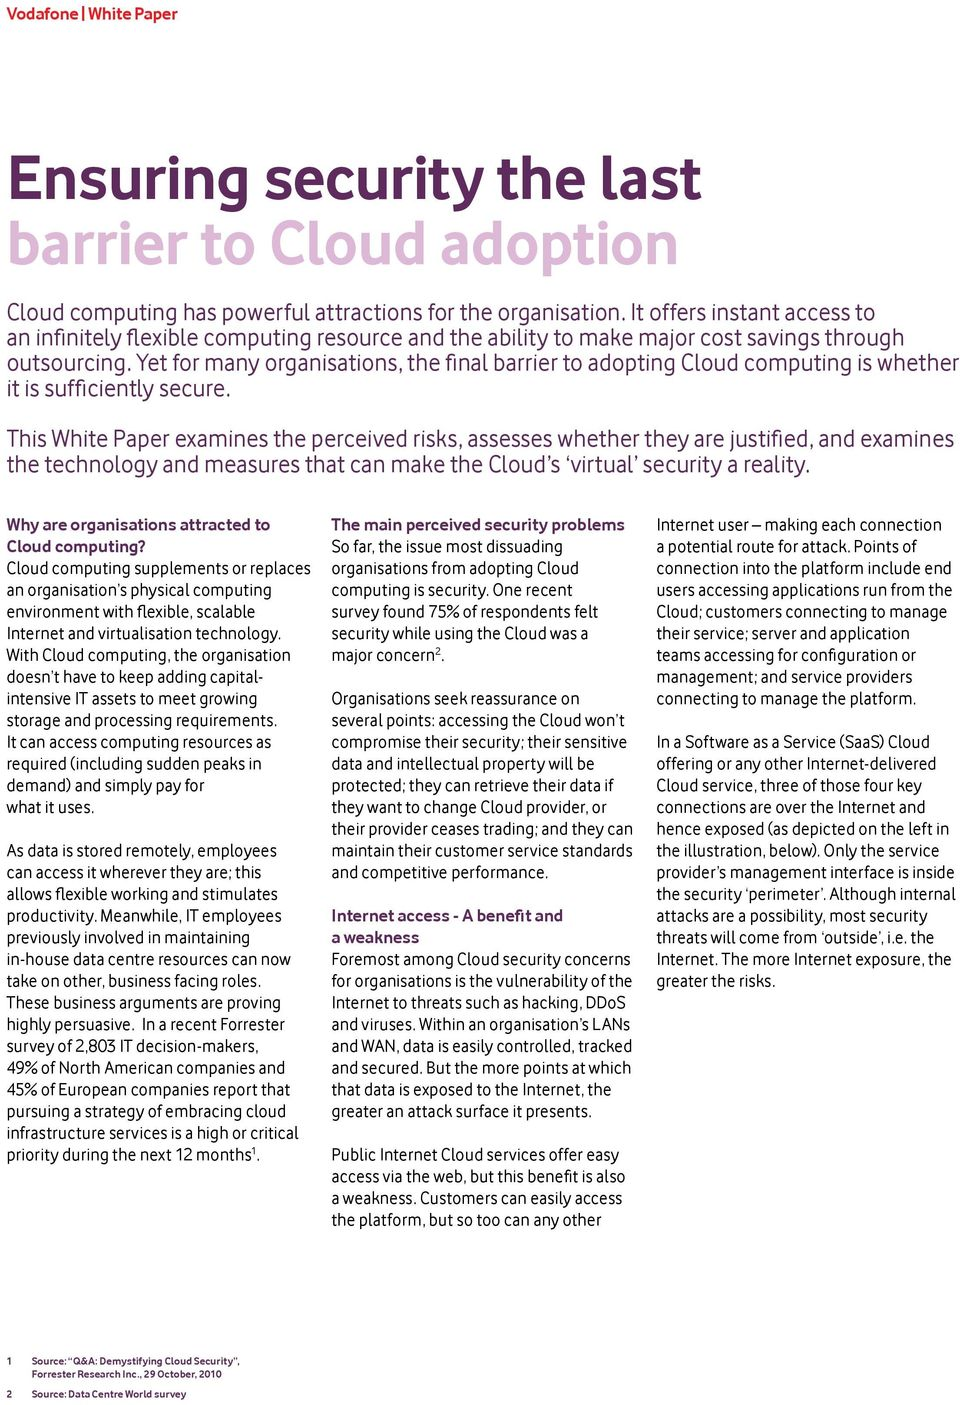 Yet for many organisations, the final barrier to adopting Cloud computing is whether it is sufficiently secure.